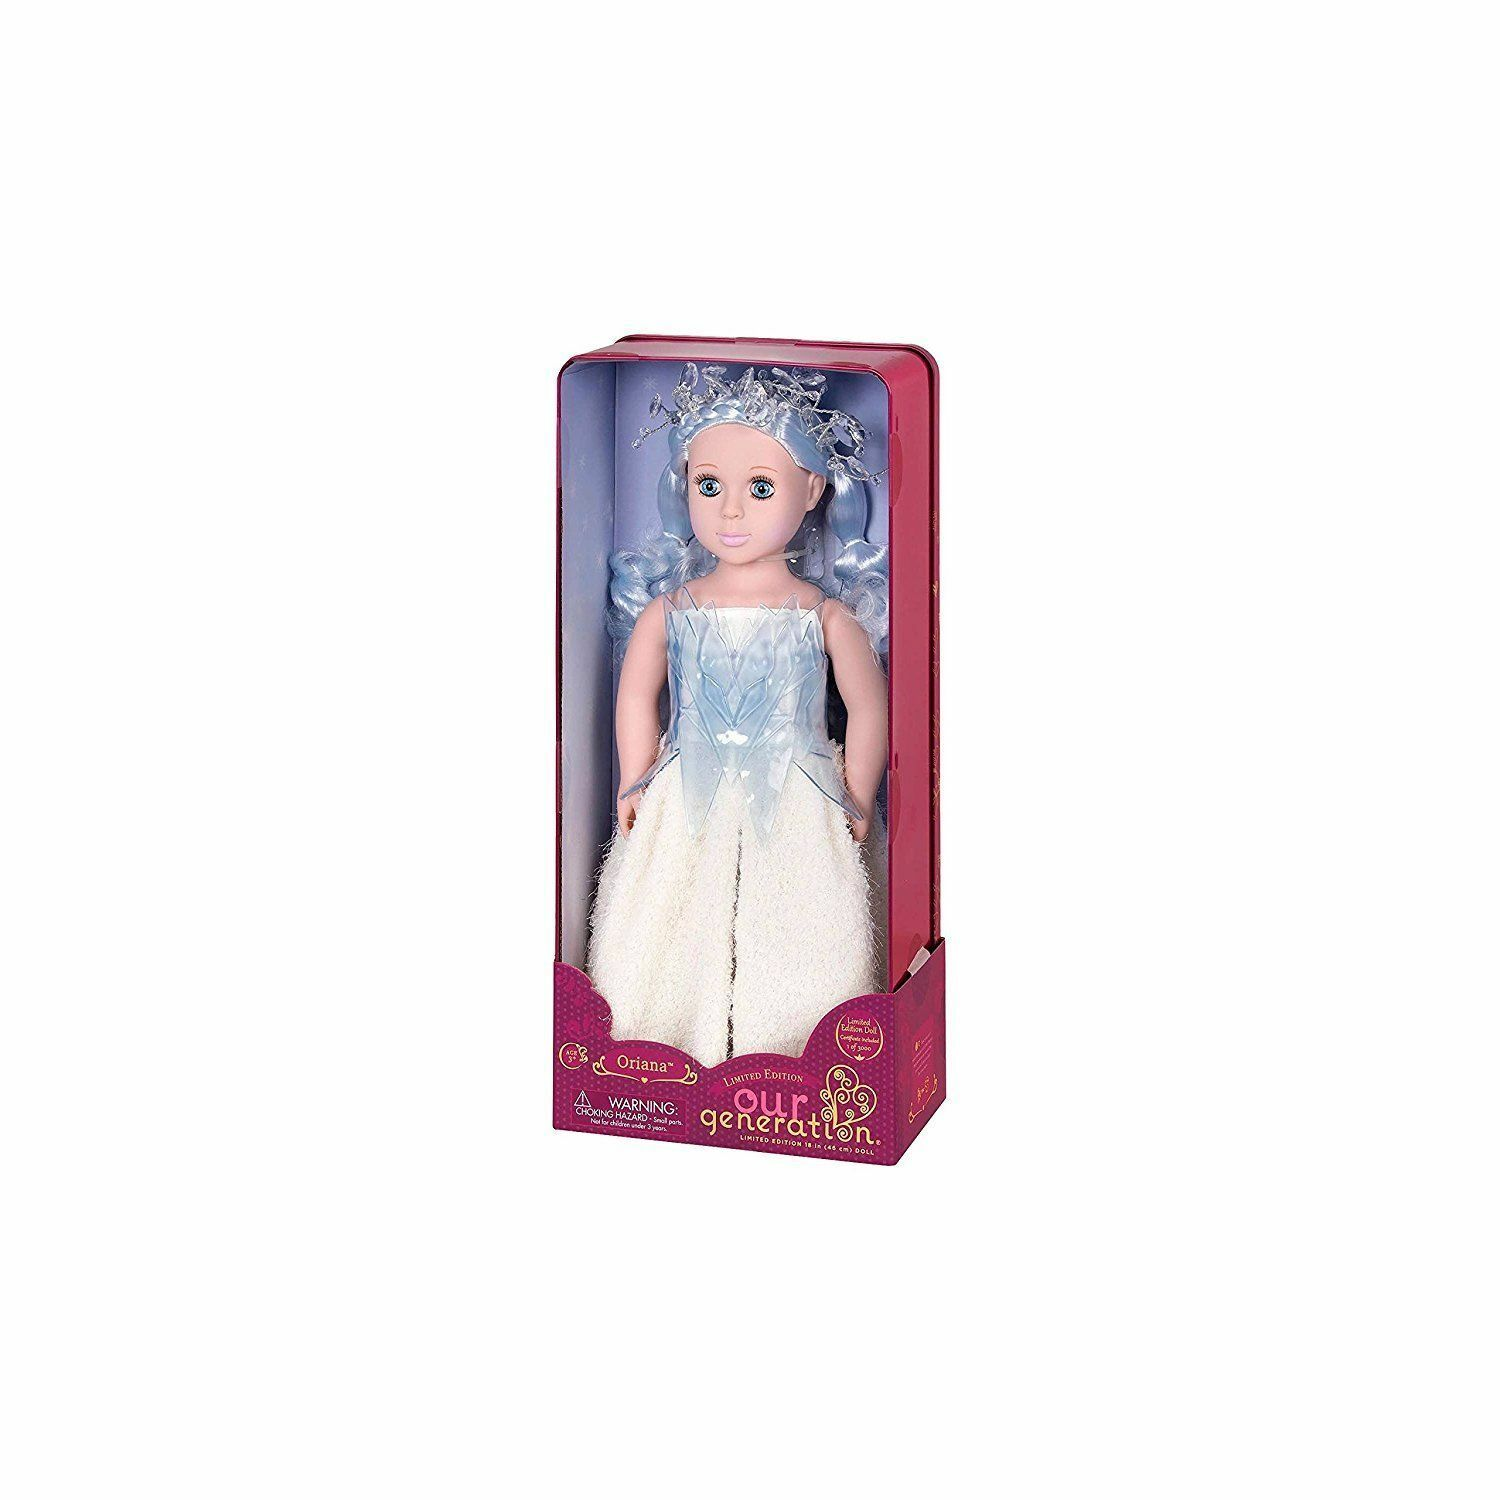 Our Generation  Limited Edition Doll Oriana